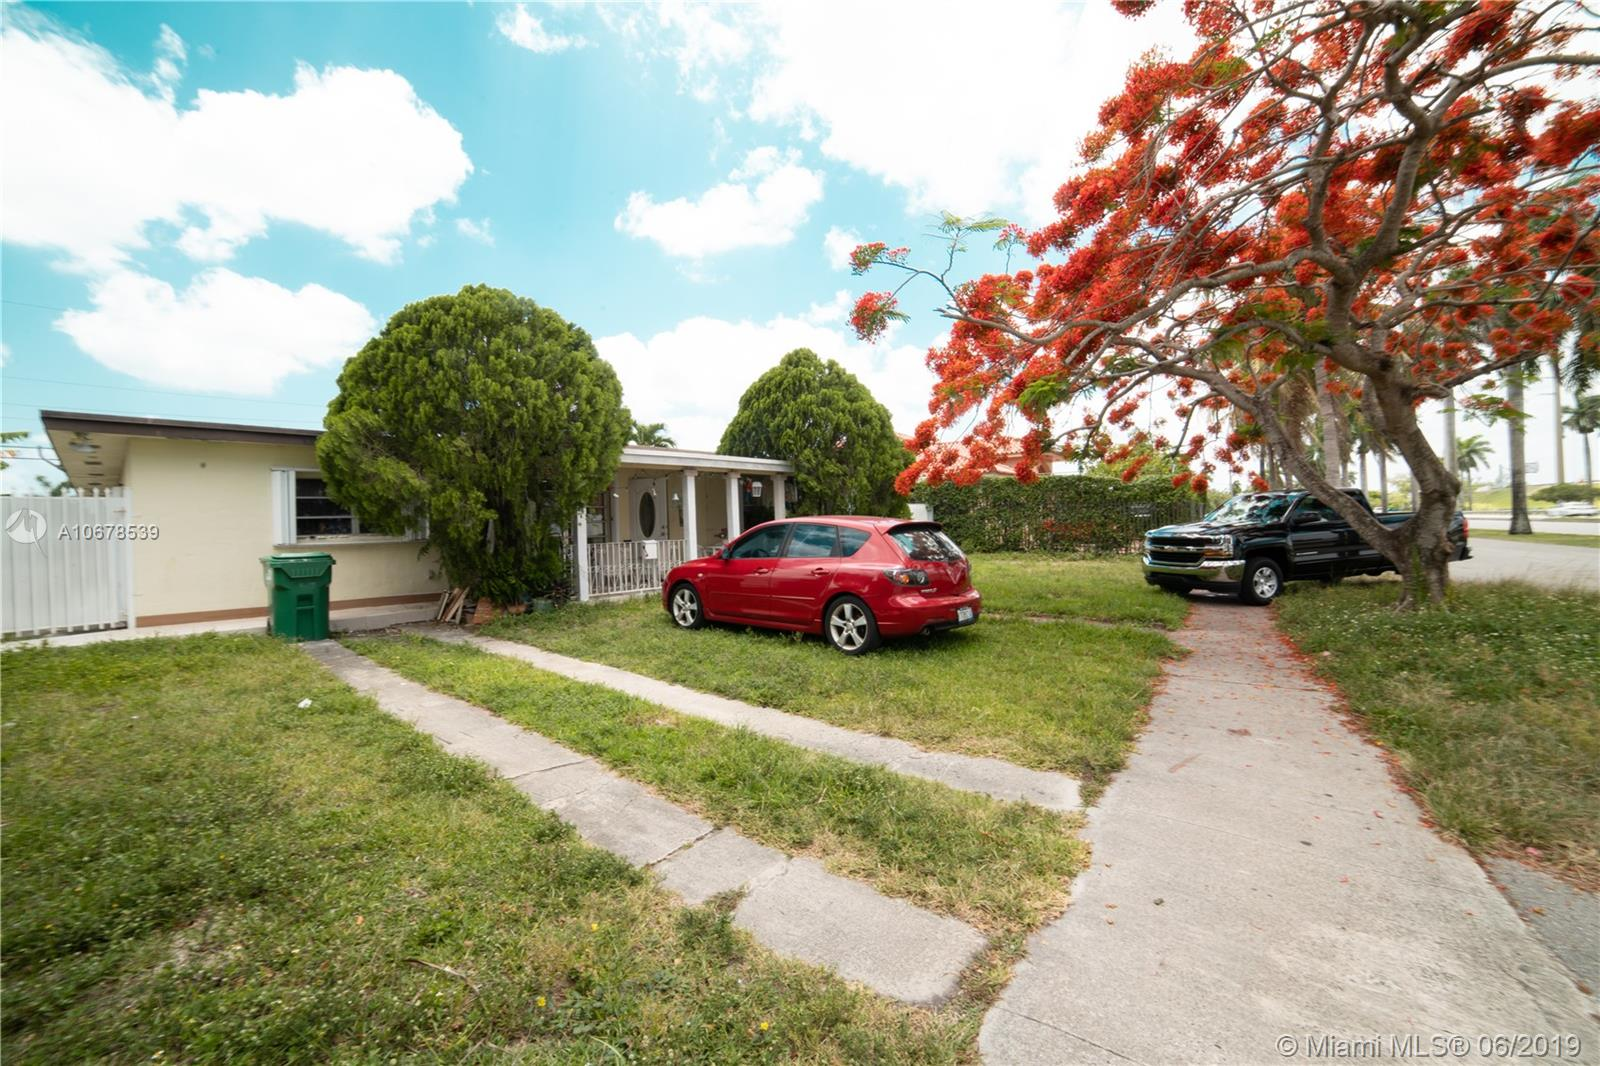 5215 SW 117th Ave, Kendall in Miami-dade County County, FL 33175 Home for Sale